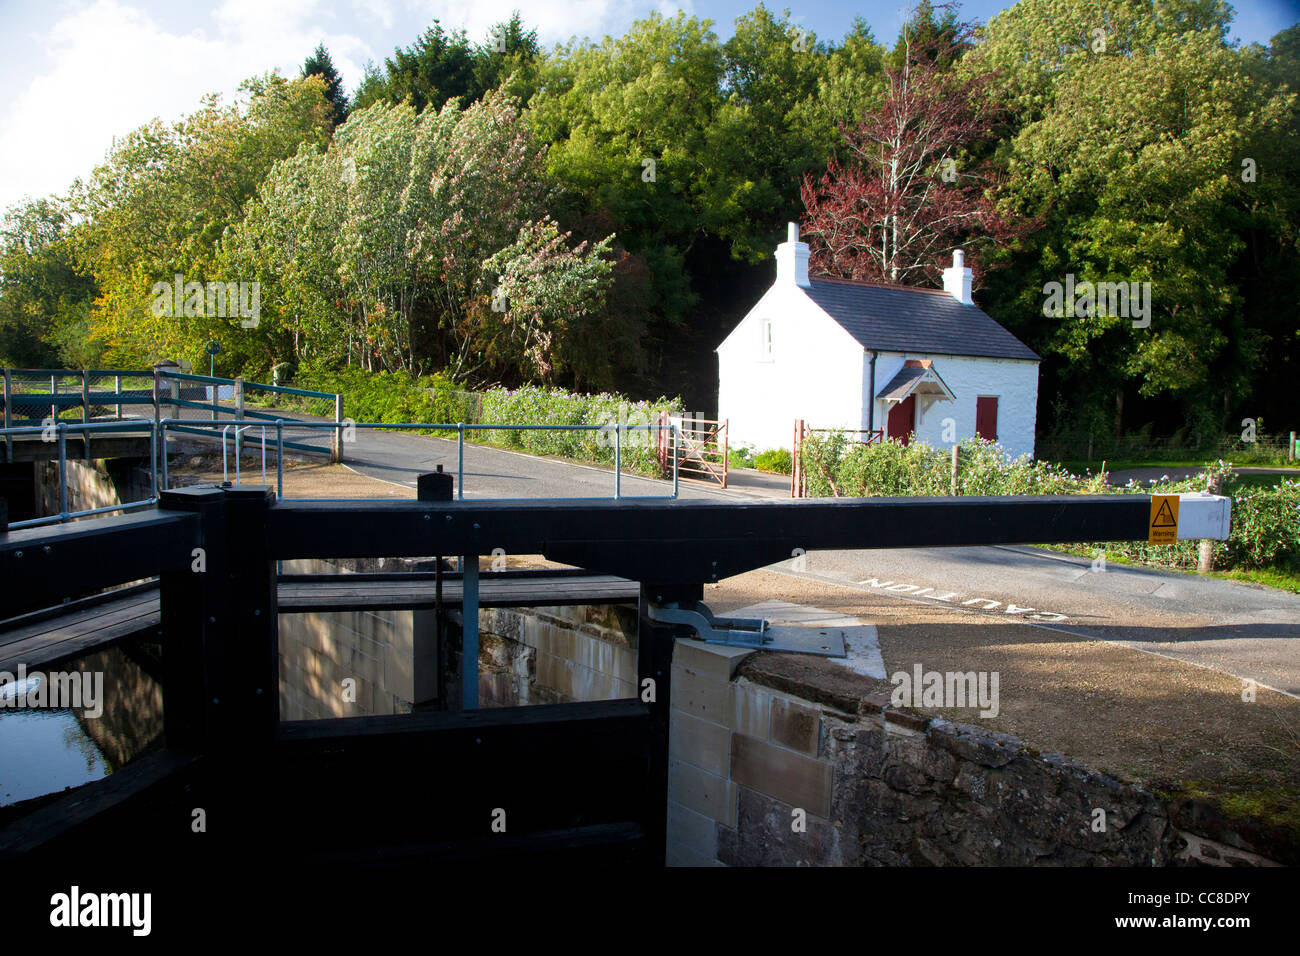 The Lock Keeper's Cottage on the Lagan Towpath, Belfast, County Down, Northern Ireland. - Stock Image